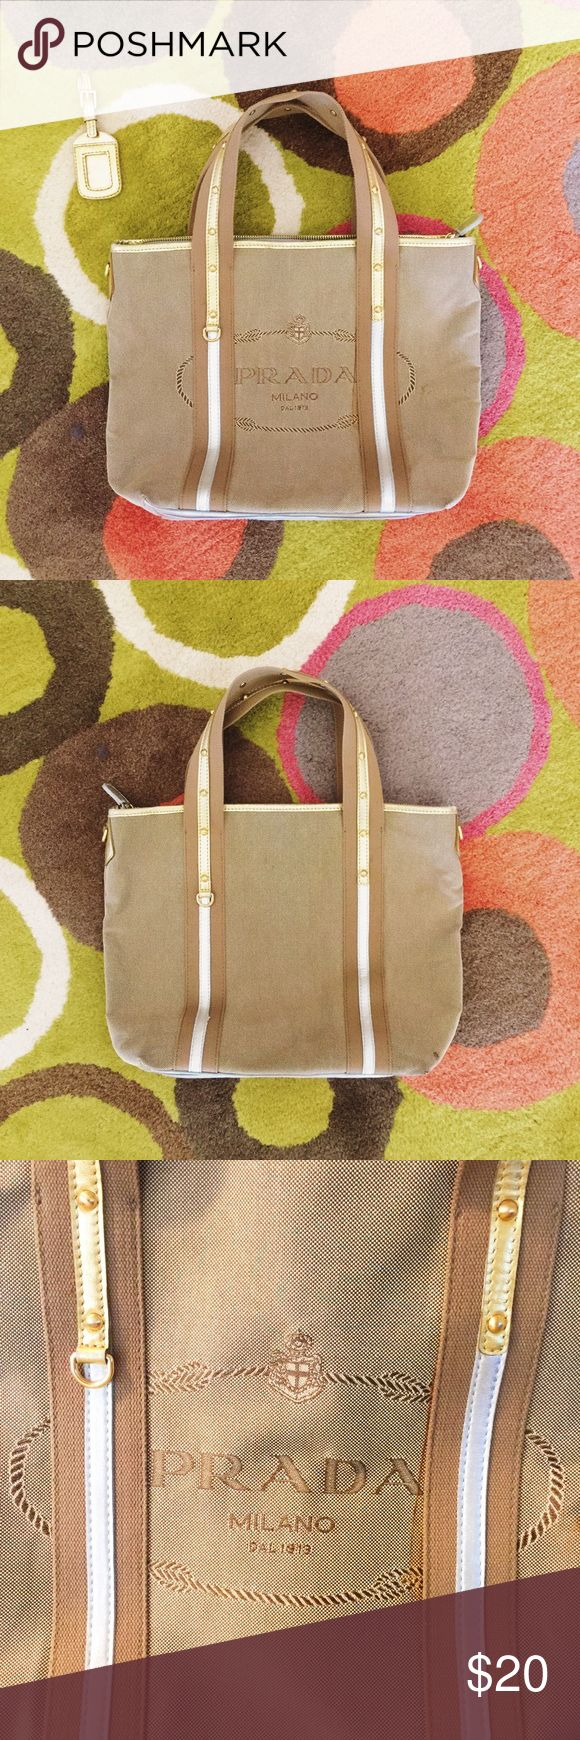 PRADA canvas tote bag Price reflects. Please do not ask! ✨ Very well made. Canvas material is very thick and sturdy. Much thicker than any Goyard or Longchamp.   Features: multiple pockets + address tag Prada Bags Totes